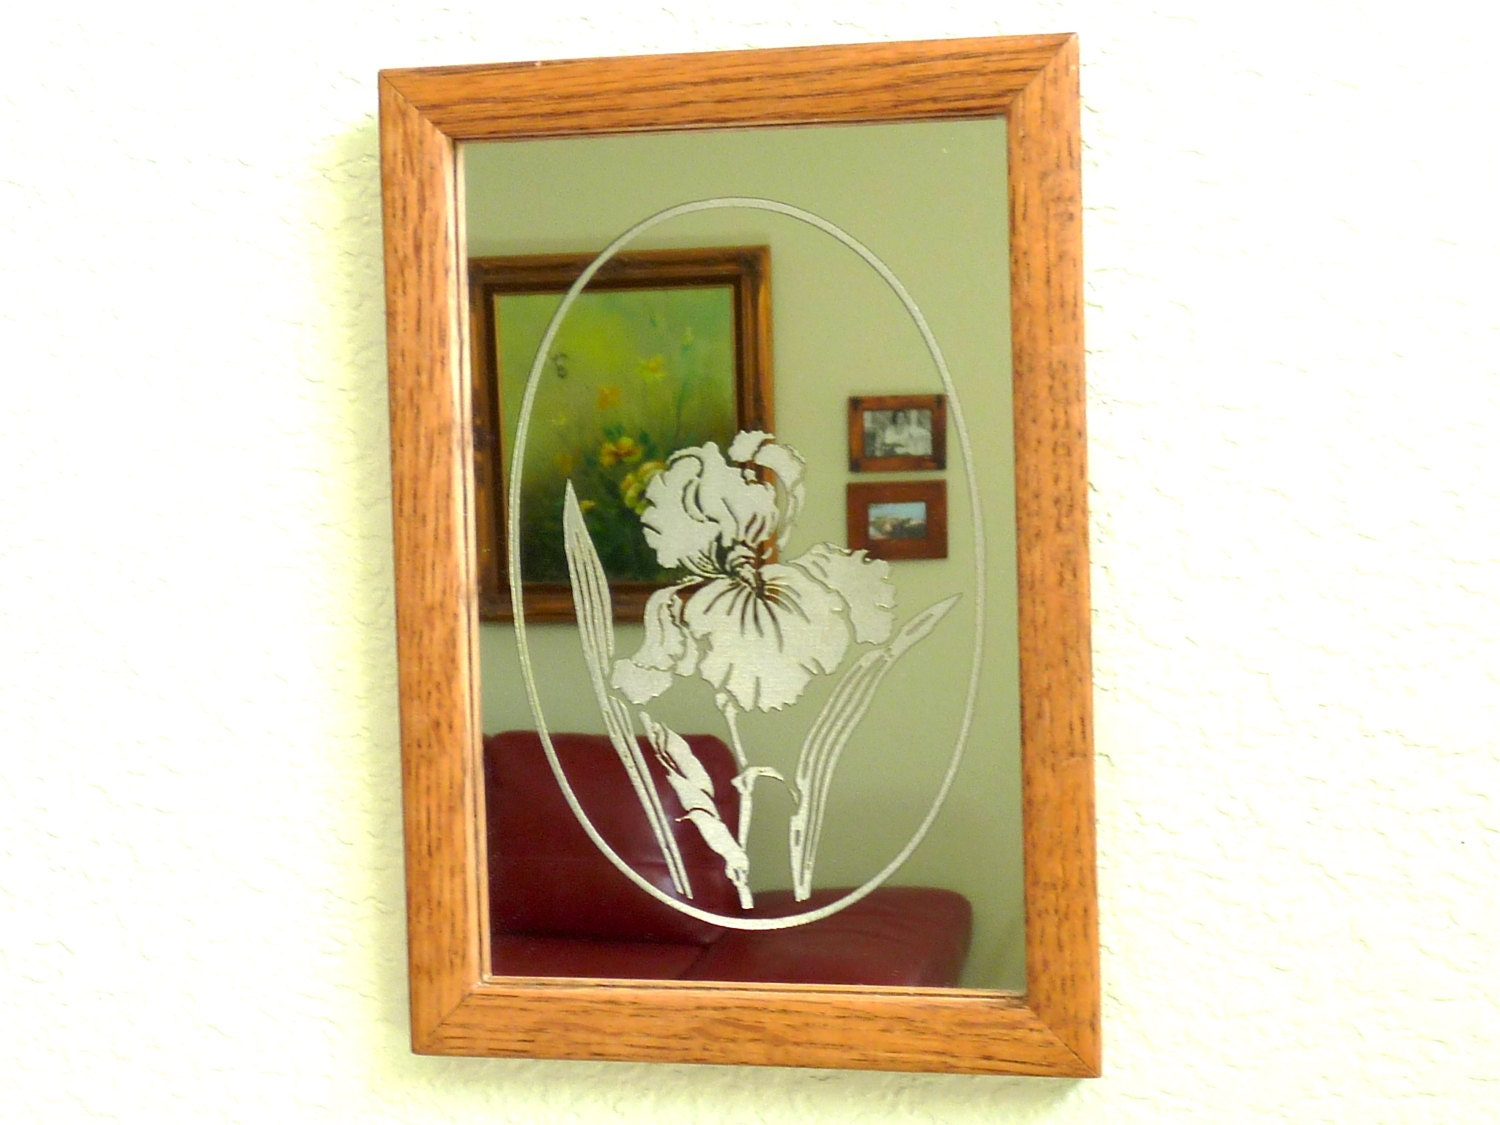 Antique Etched Mirror Wood Frame Wall Decor by KMalinkaVintage